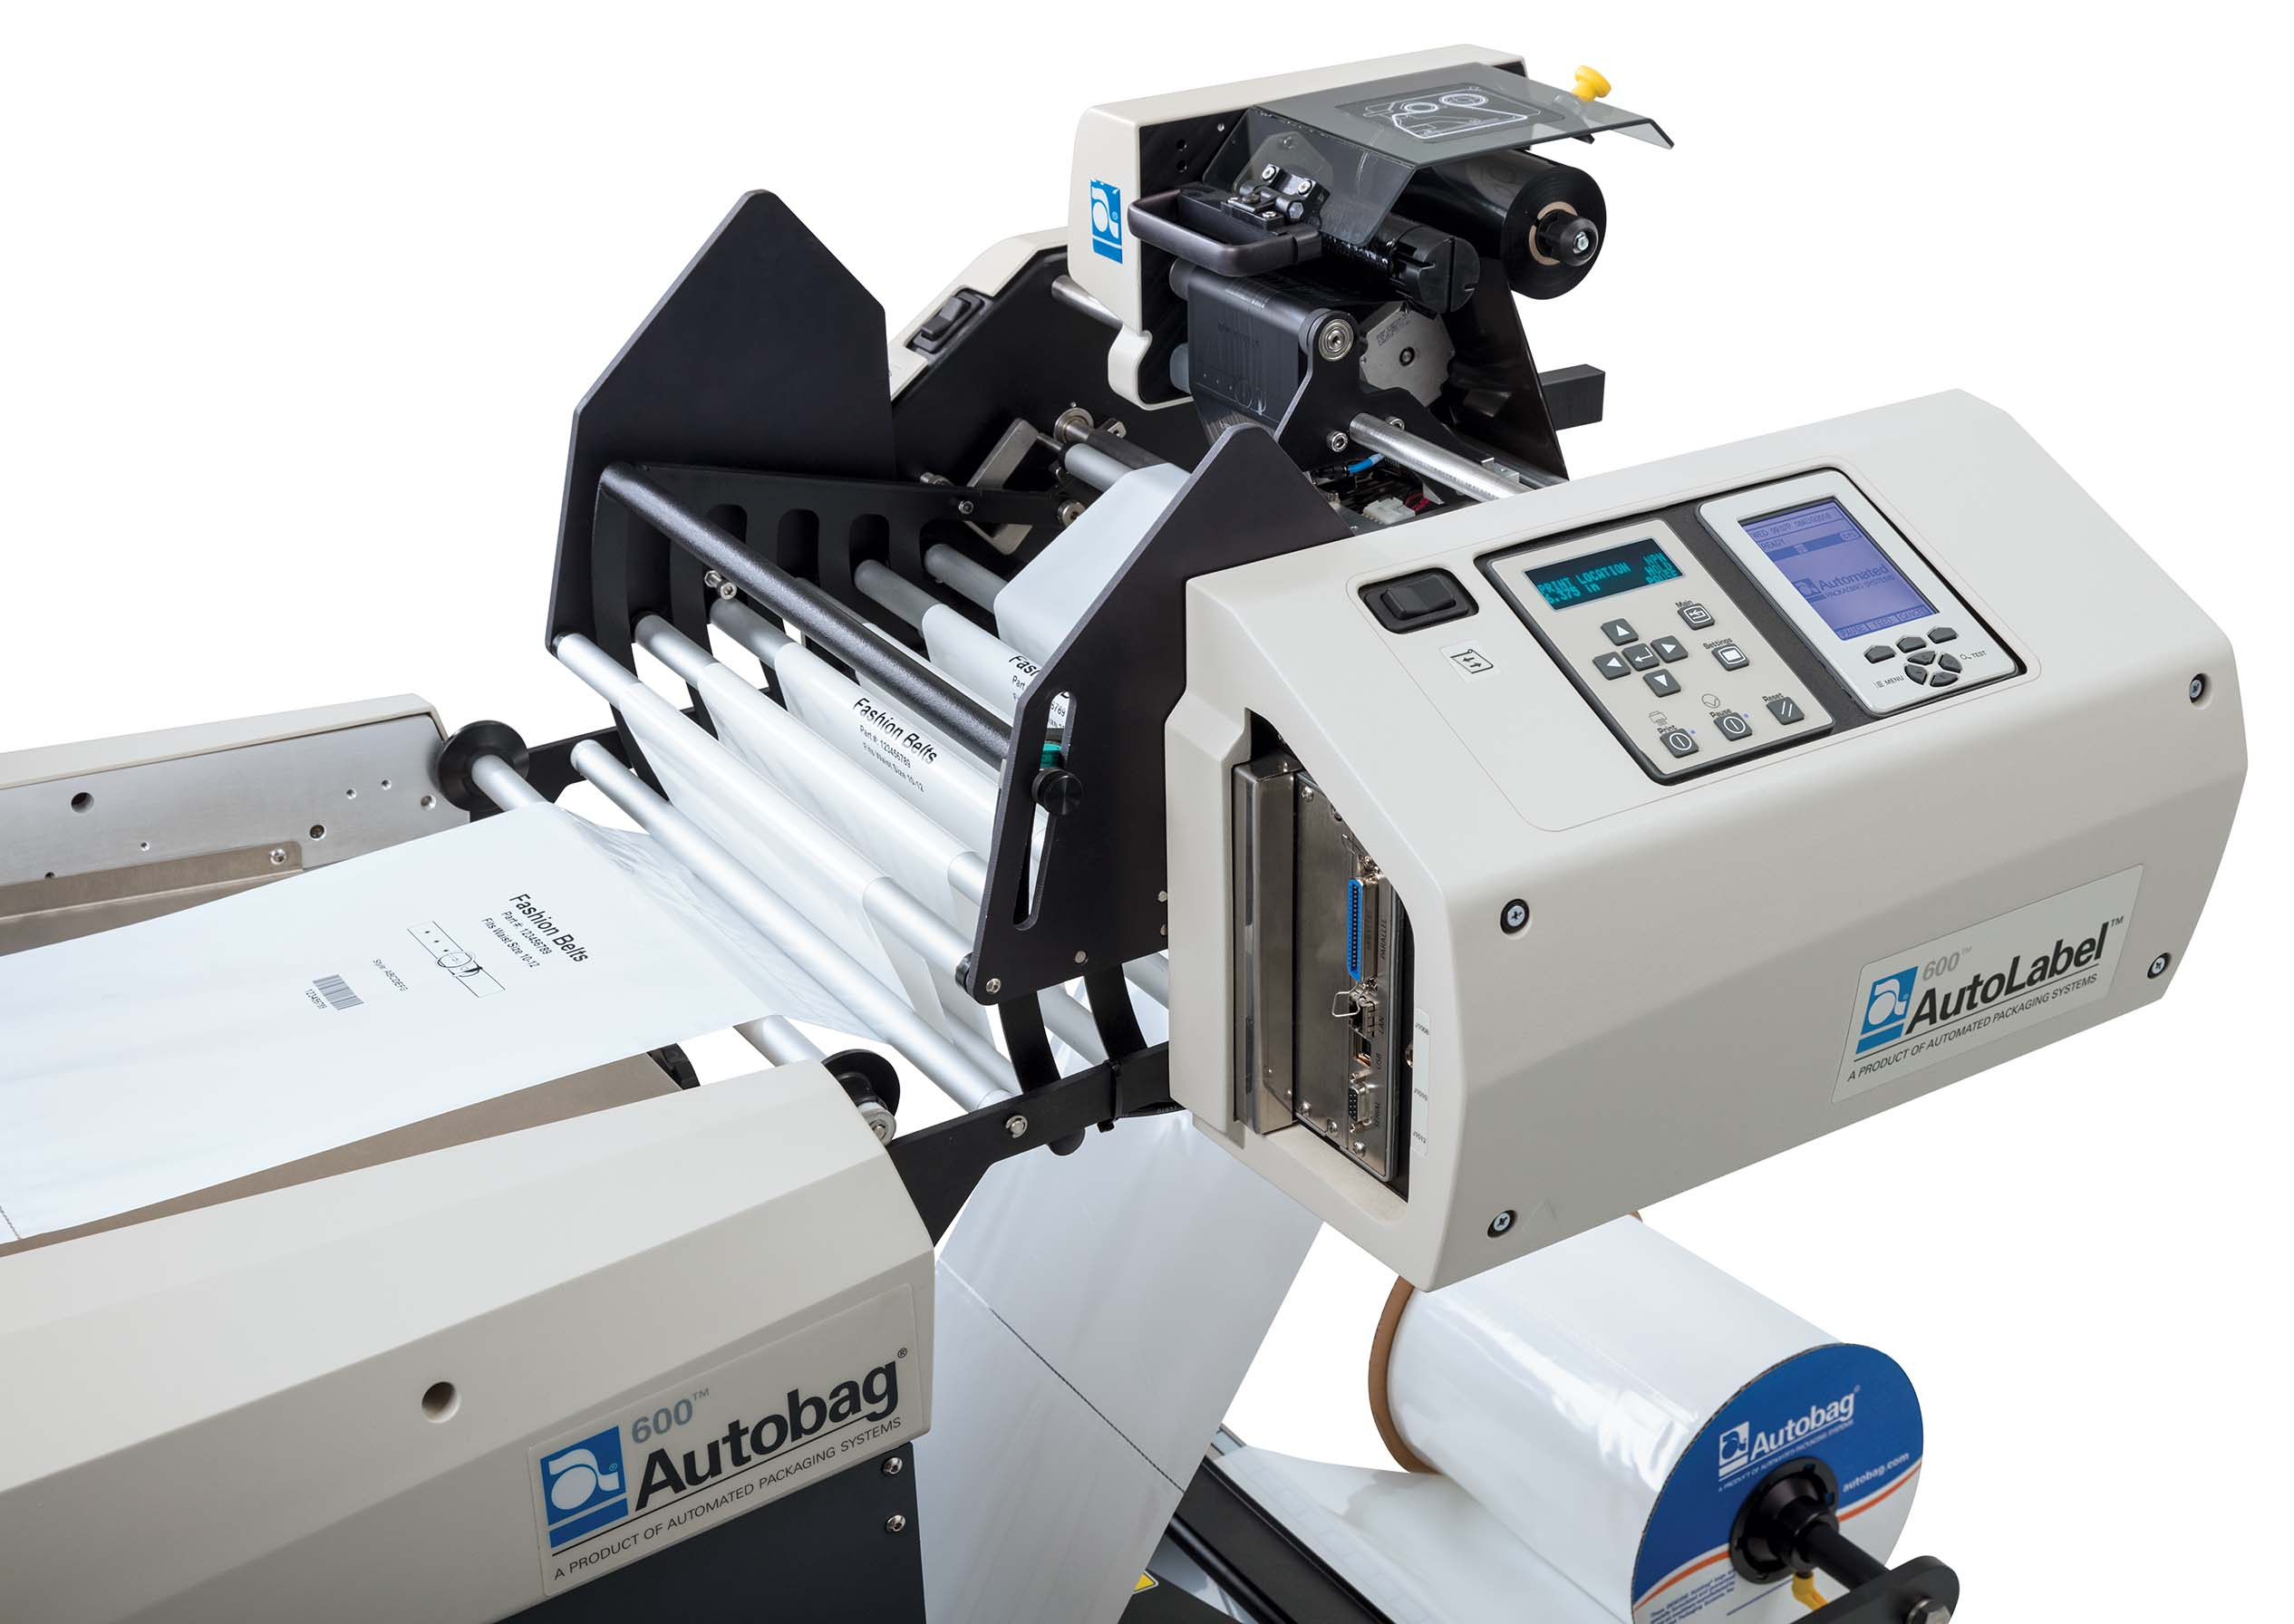 Autolabel 600 hoge resolutie printer close up